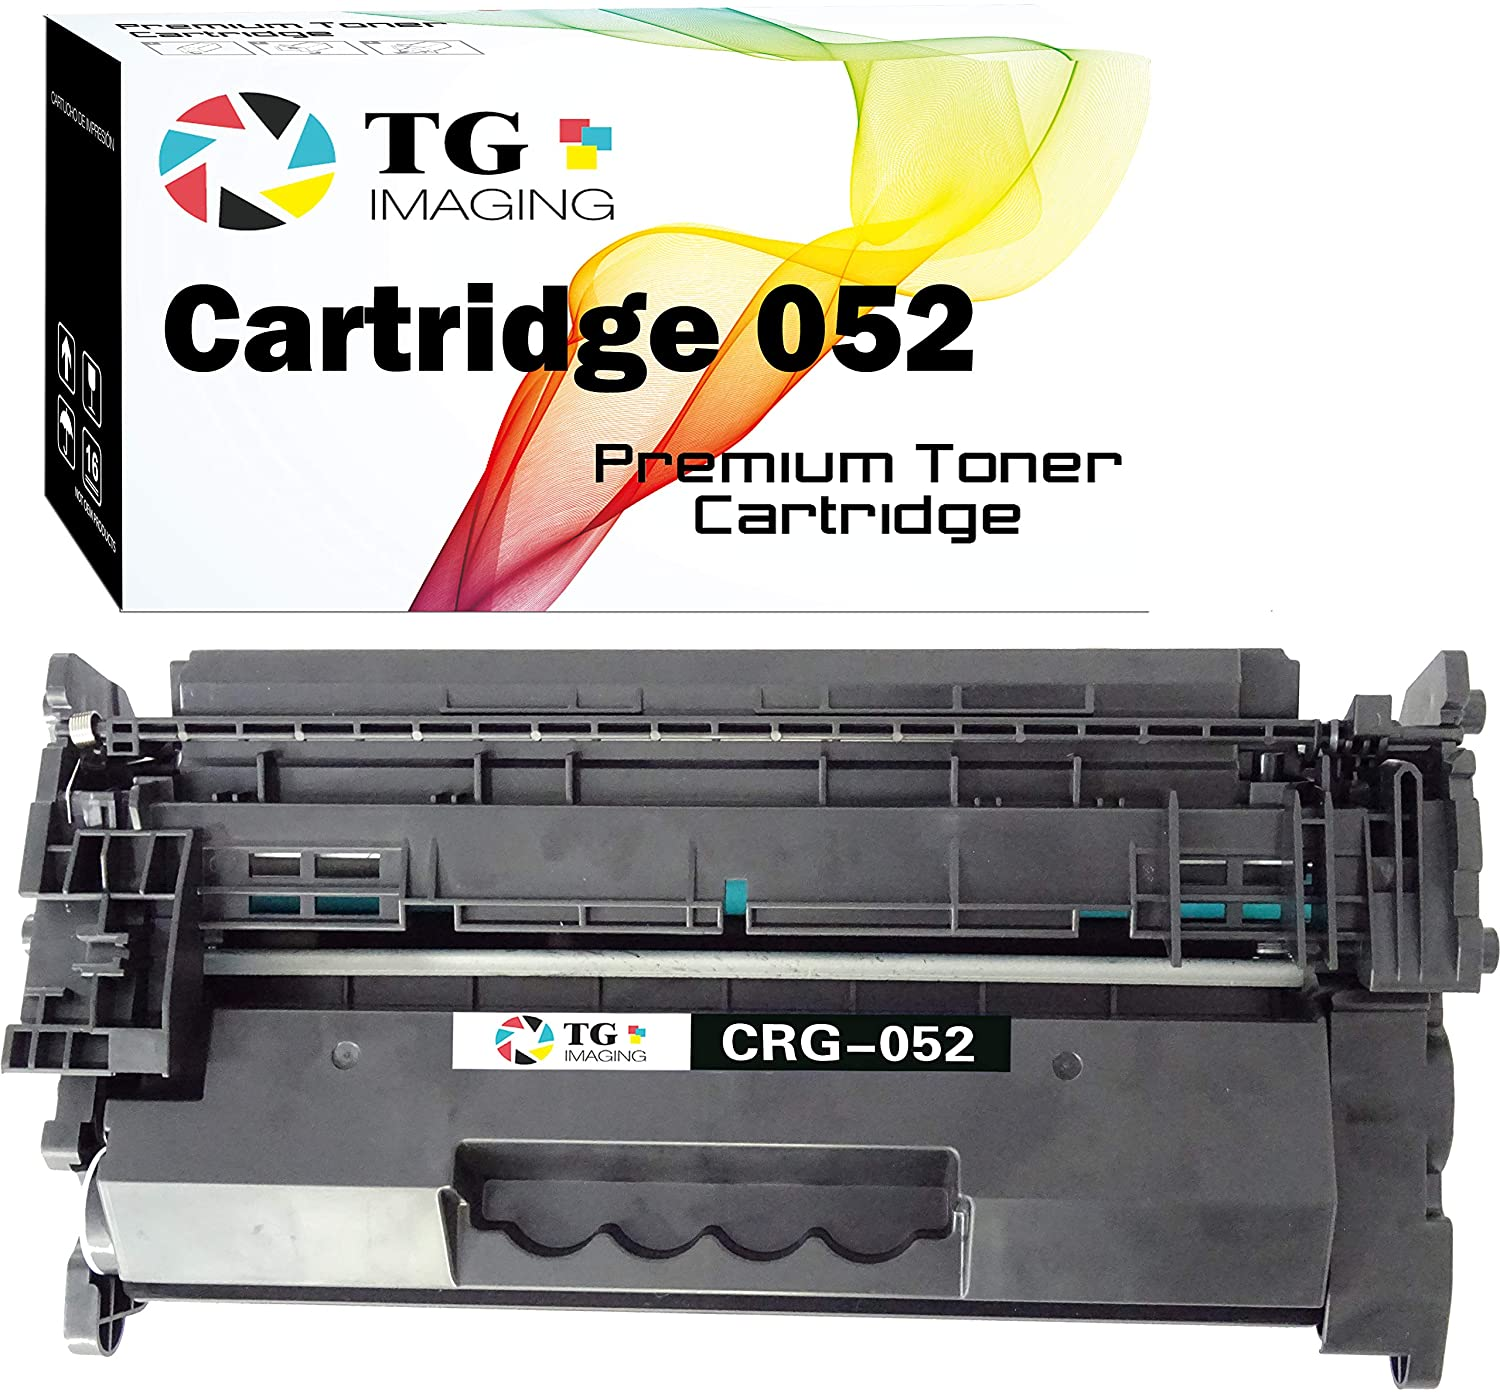 (1-Pack, Black) TG Imaging Compatible Canon 052 CRG-052 052H Toner Replacement for Canon LBP214 LBP215 MF424 MF426 MF429 LBP214dw MF426dw MF424dw Printers